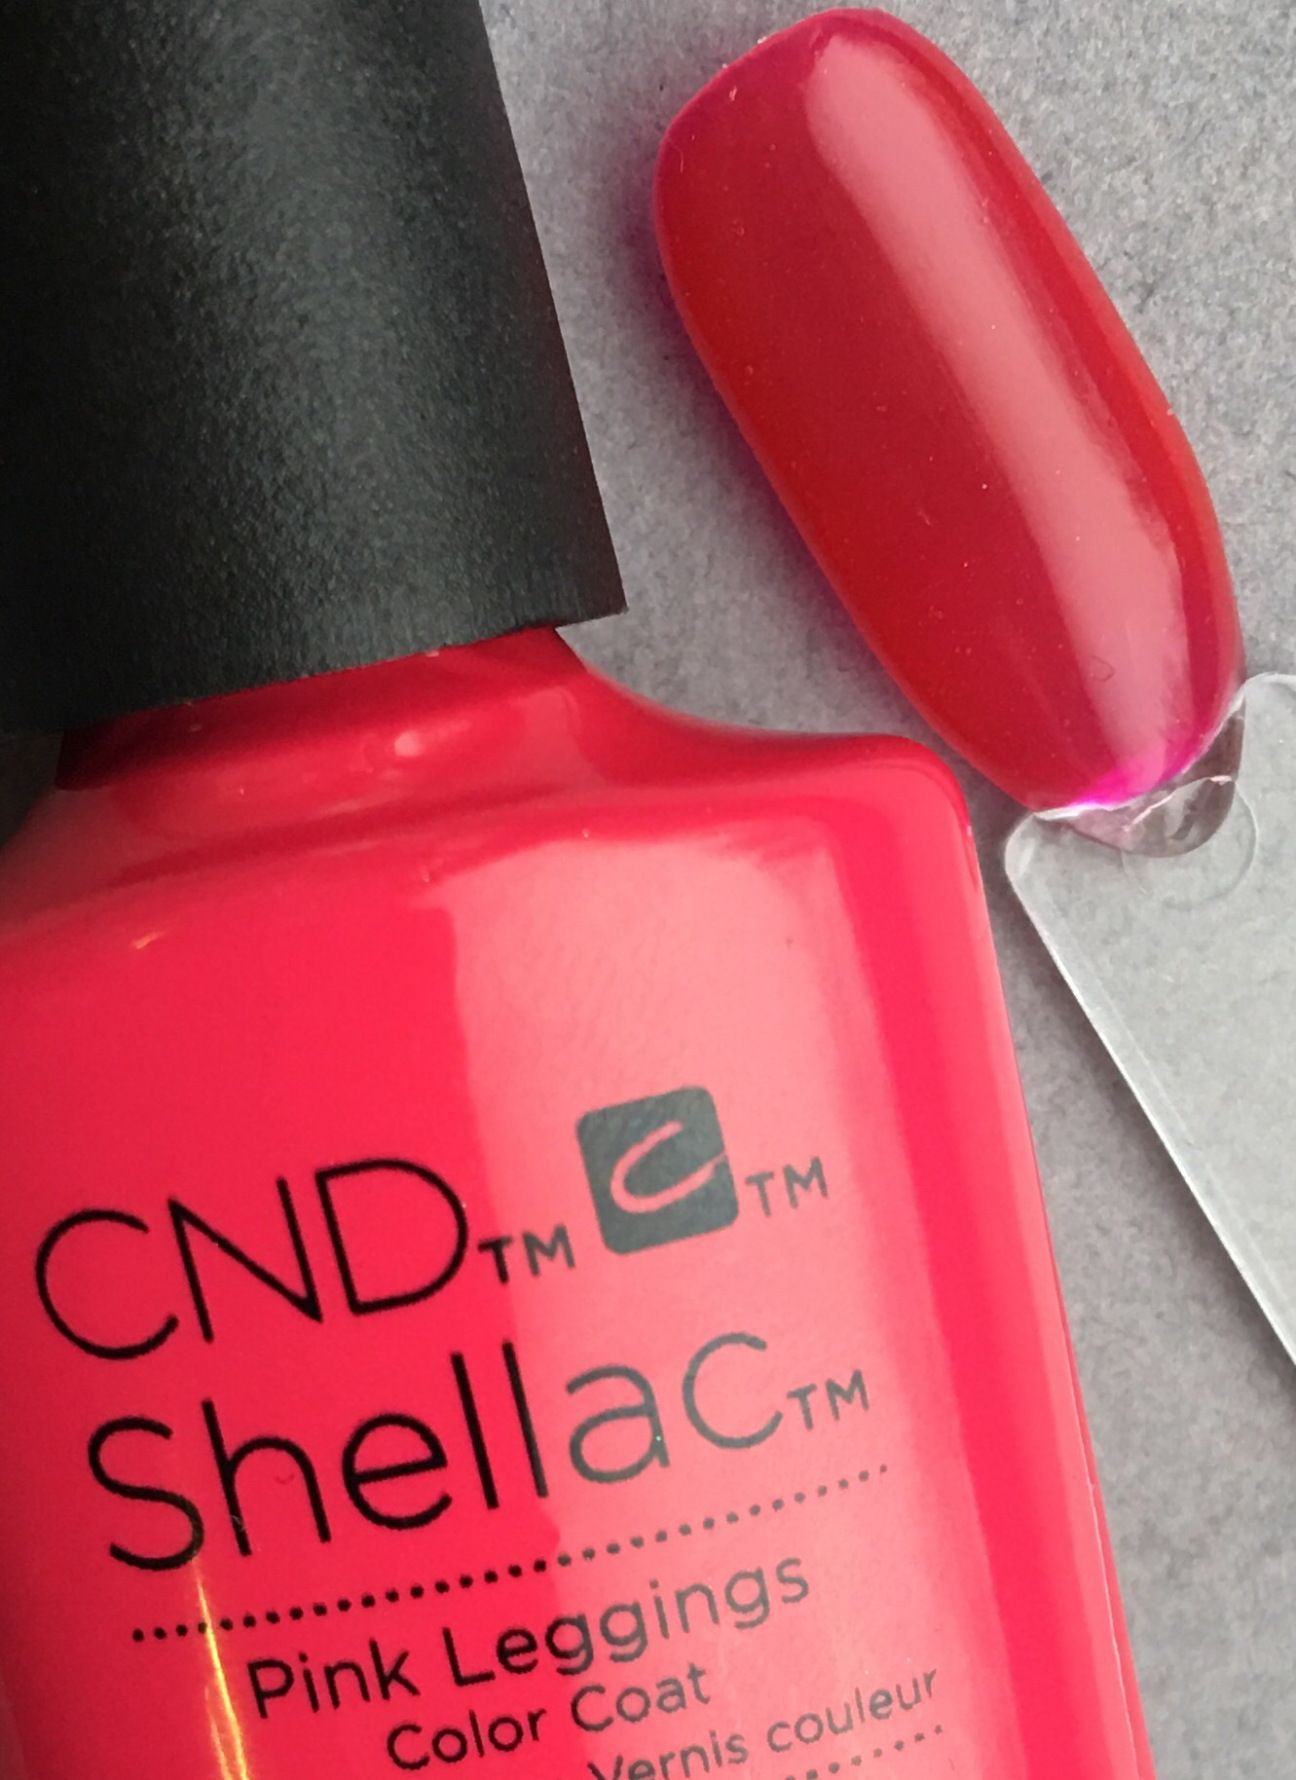 Cnd Shellac Pink Leggings New Wave Collection In 2019 Shellac Nail Colors Uv Gel Nail